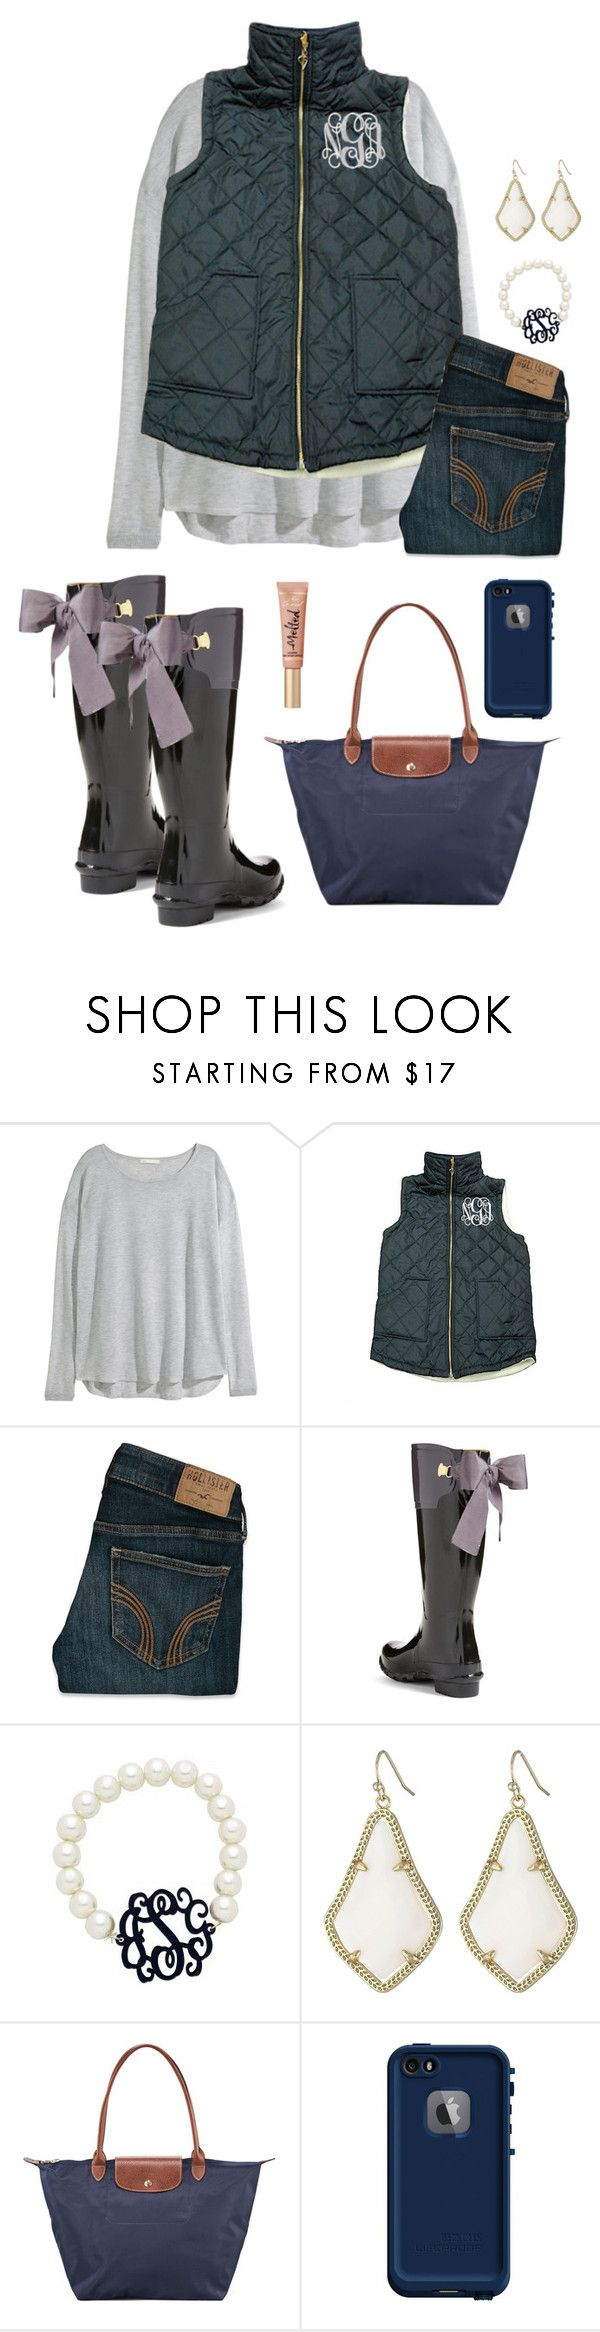 """☔️"" by kat-prepster ❤ liked on Polyvore featuring H&M, Hollister Co., Joules, Kendra Scott, Longchamp and LifeProof"